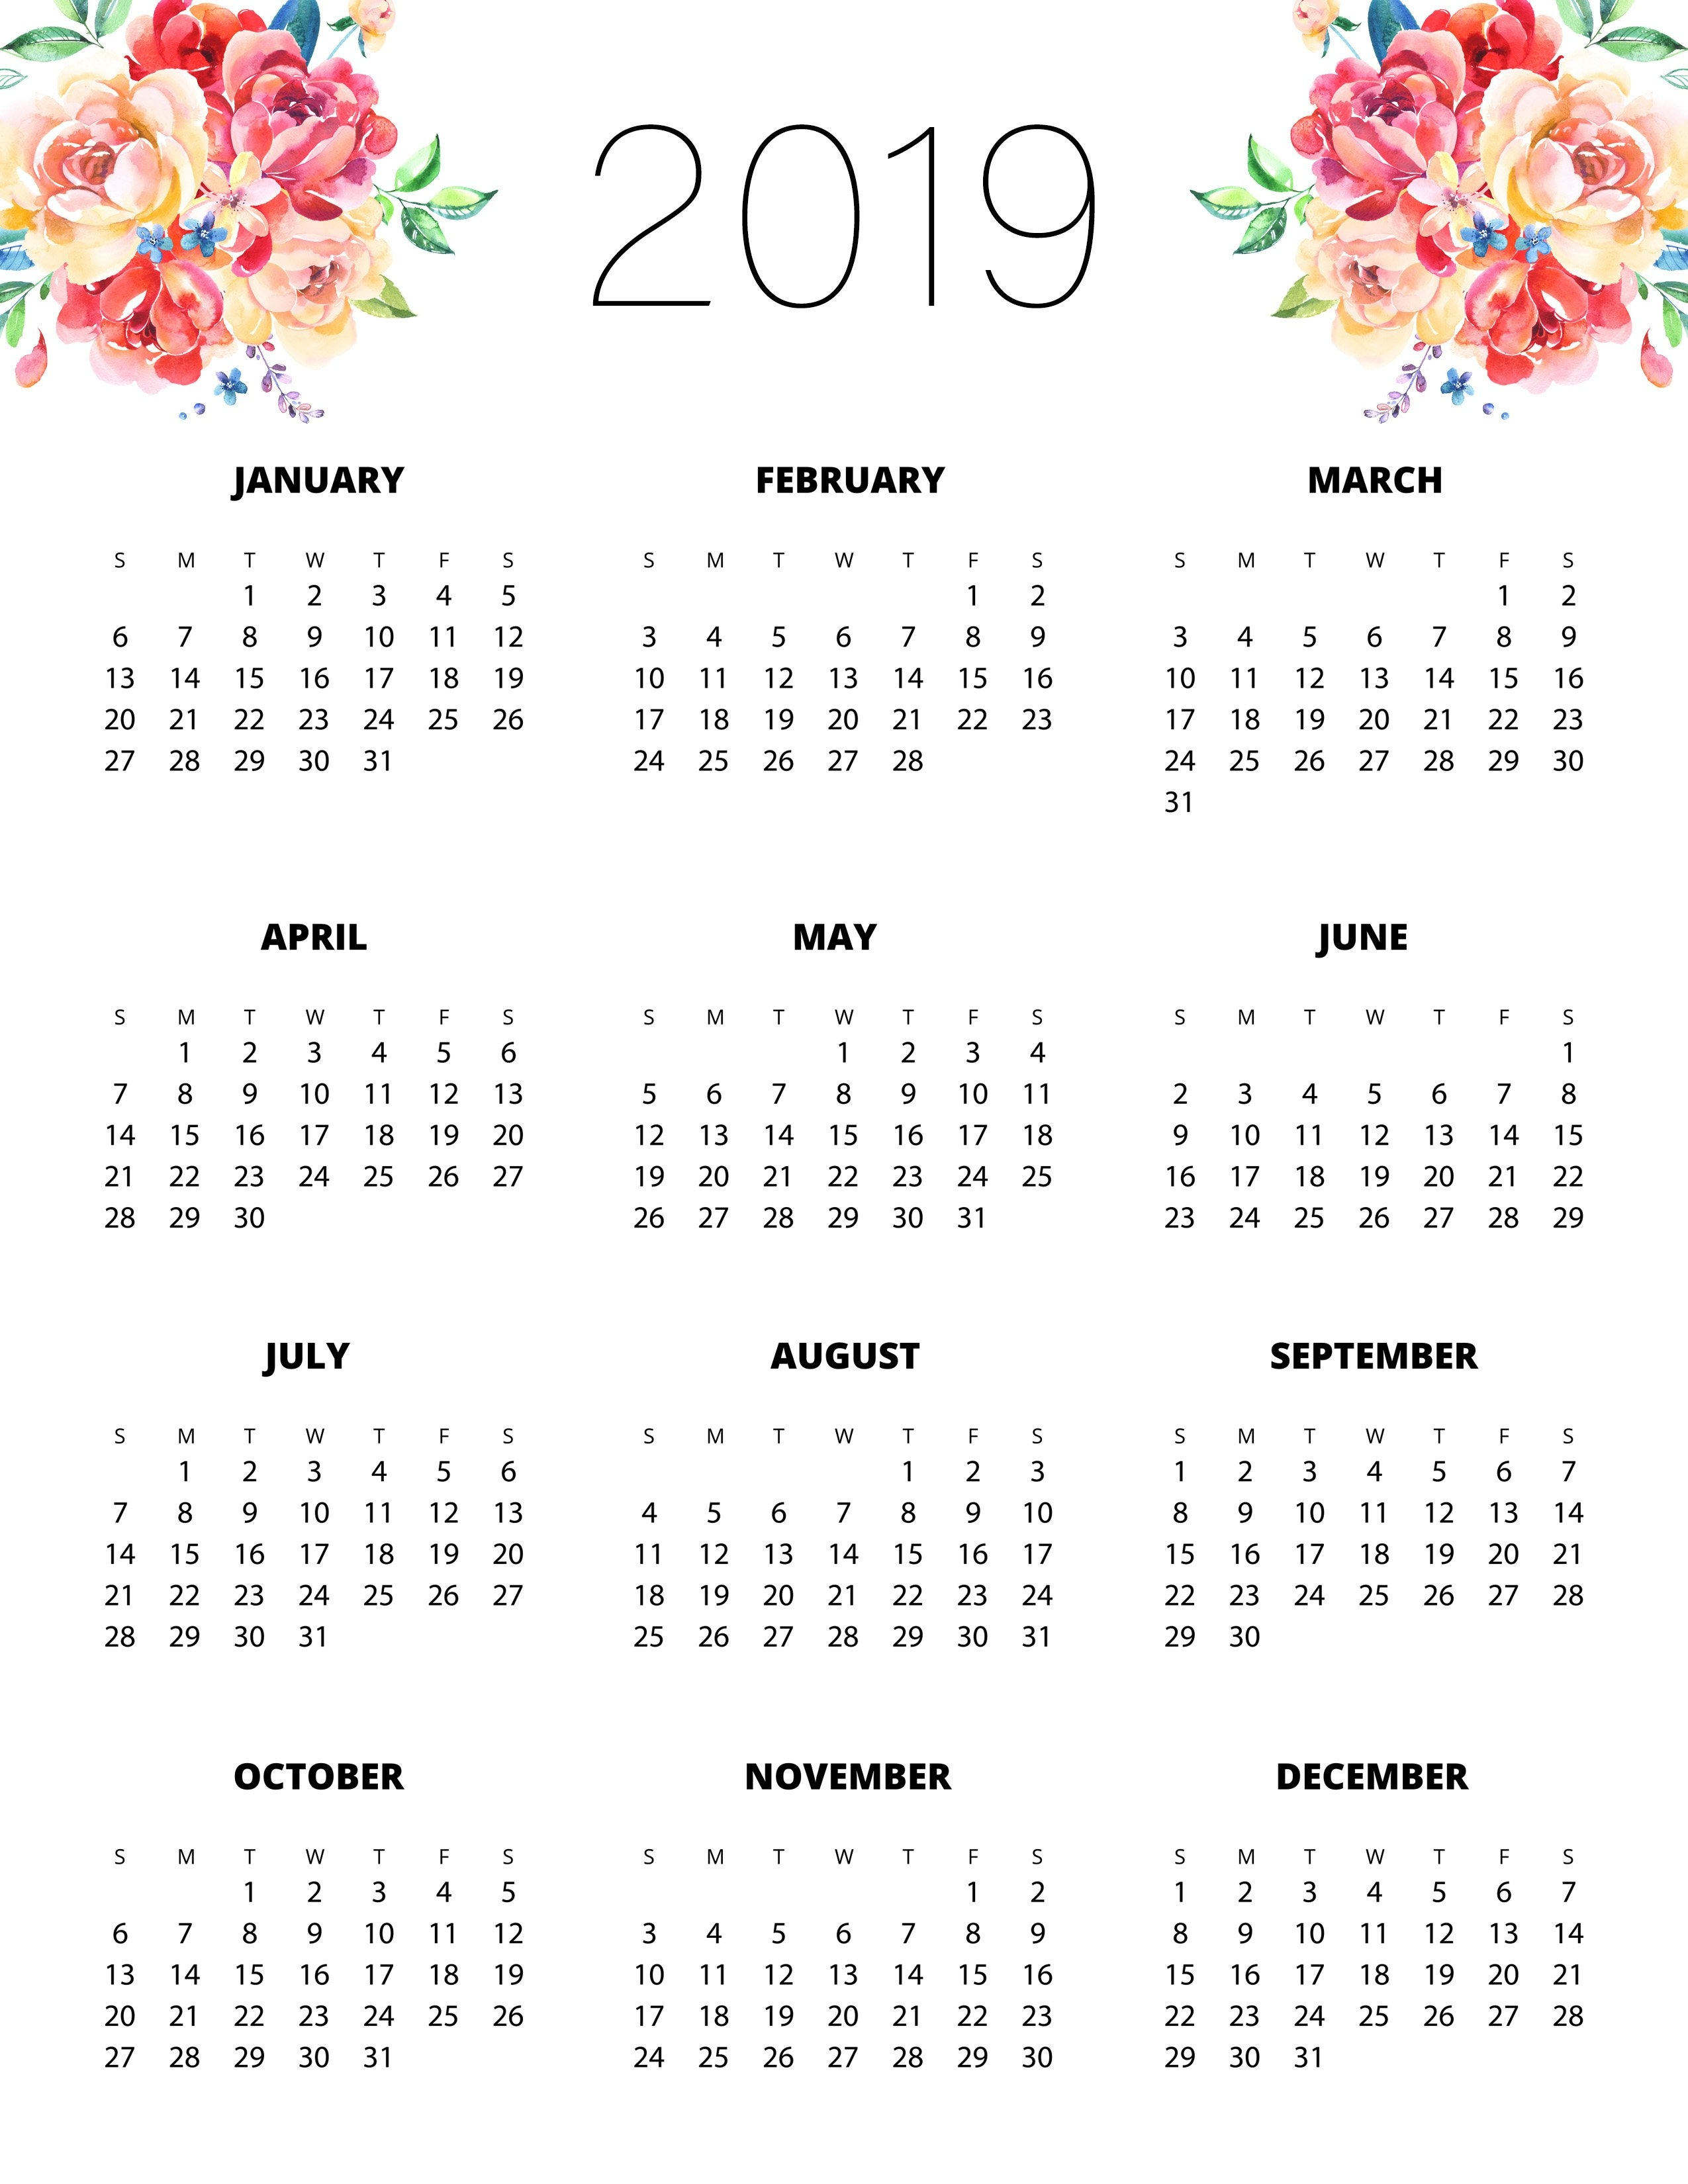 Free Printable 2019 Planner 50 Plus Printable Pages!!! - The Cottage Calendar 2019 Print Free